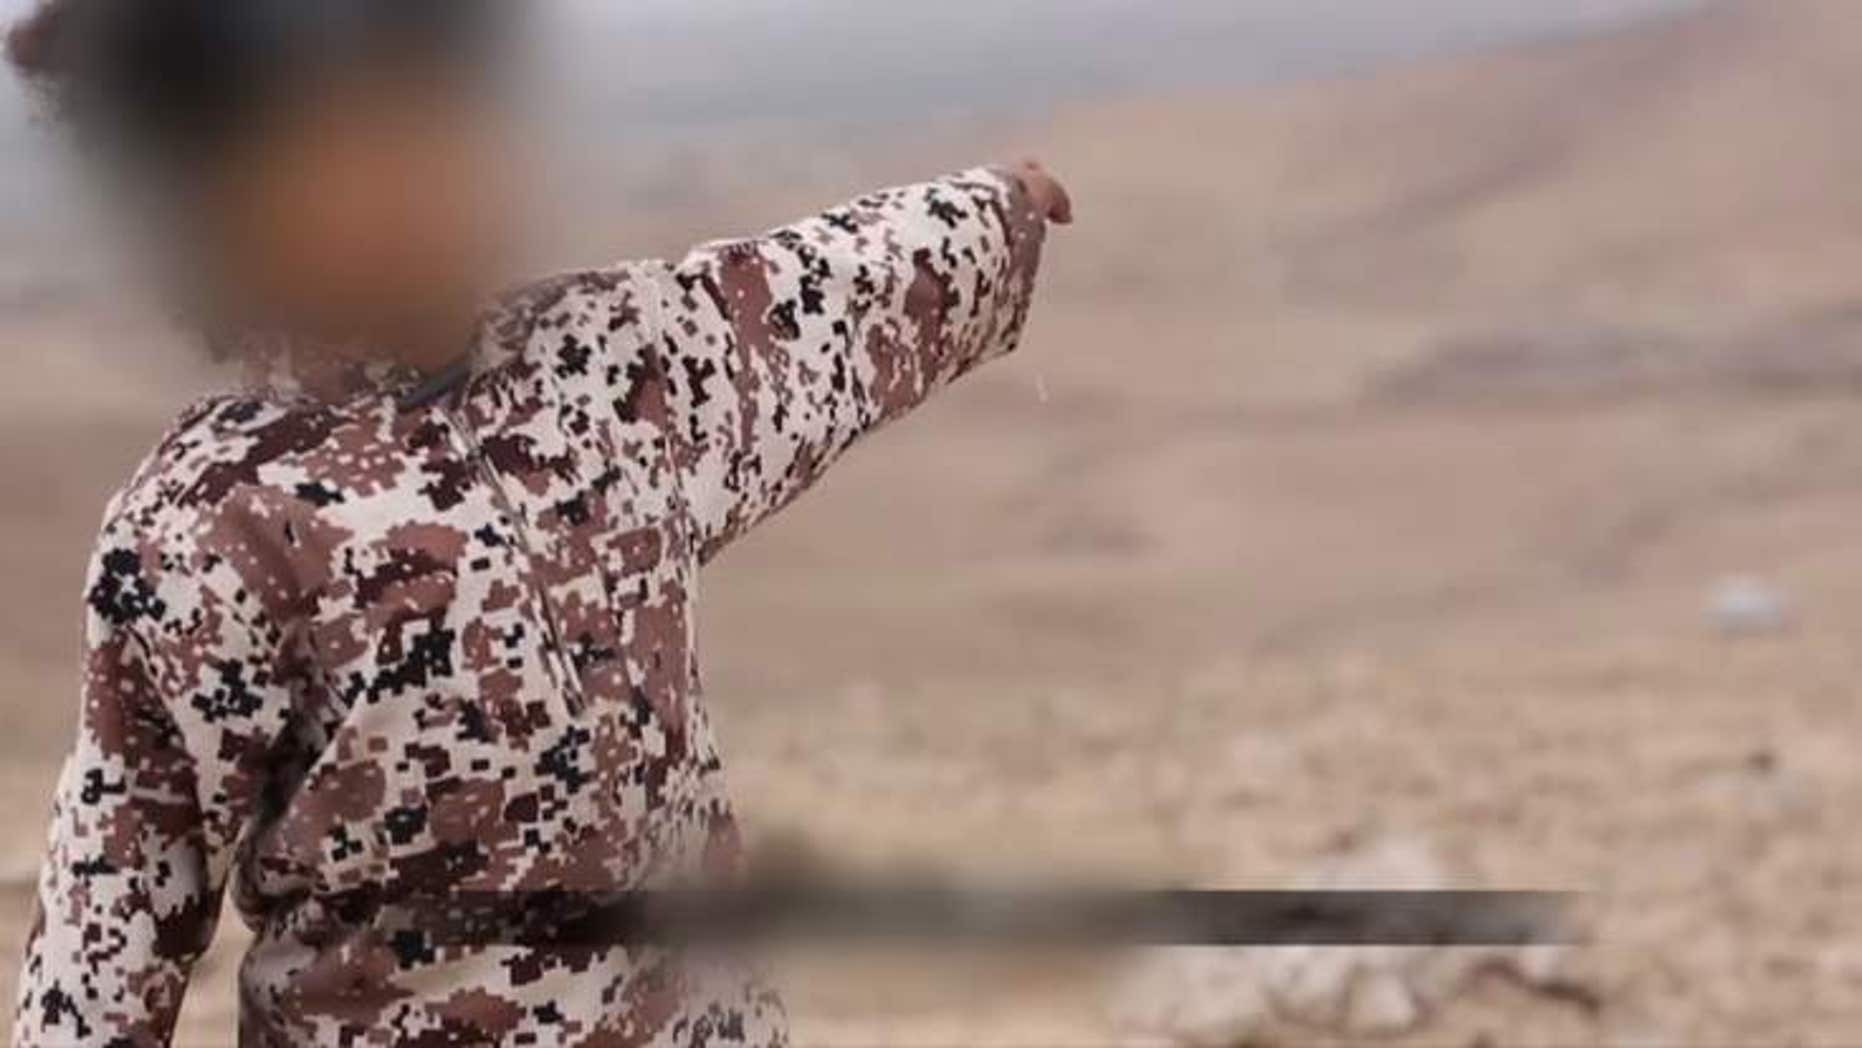 The boy seen in the latest ISIS video was identified as the young son of a London woman who left for Syria.